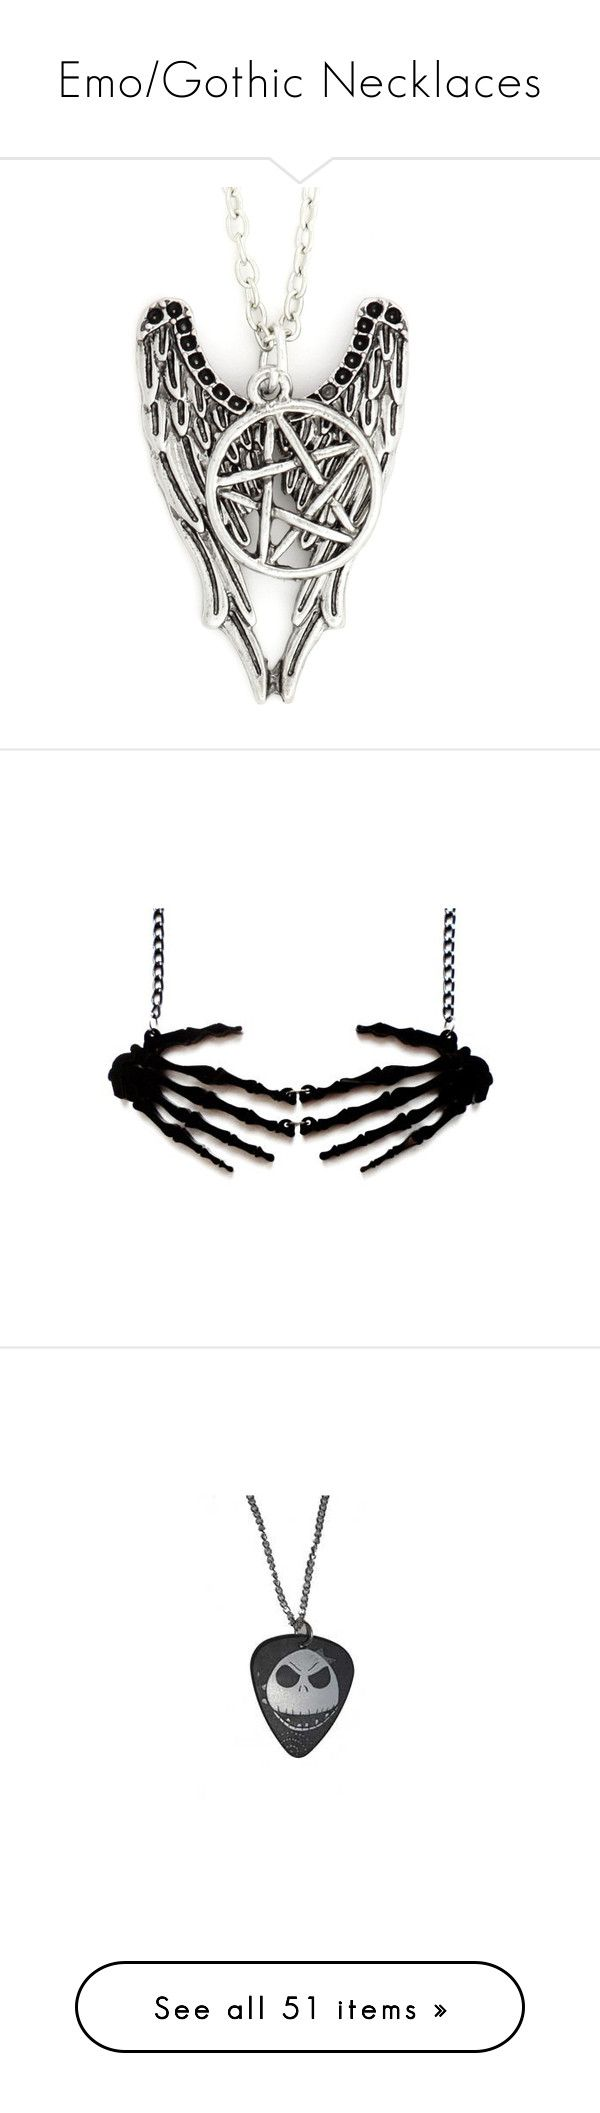 """Emo/Gothic Necklaces"" by deadovertrouble666 on Polyvore featuring jewelry, accessories, necklaces, star jewelry, pentagram pendant, silver tone jewelry, metal jewelry, pentagram jewelry, gothic necklace and skeleton jewelry"